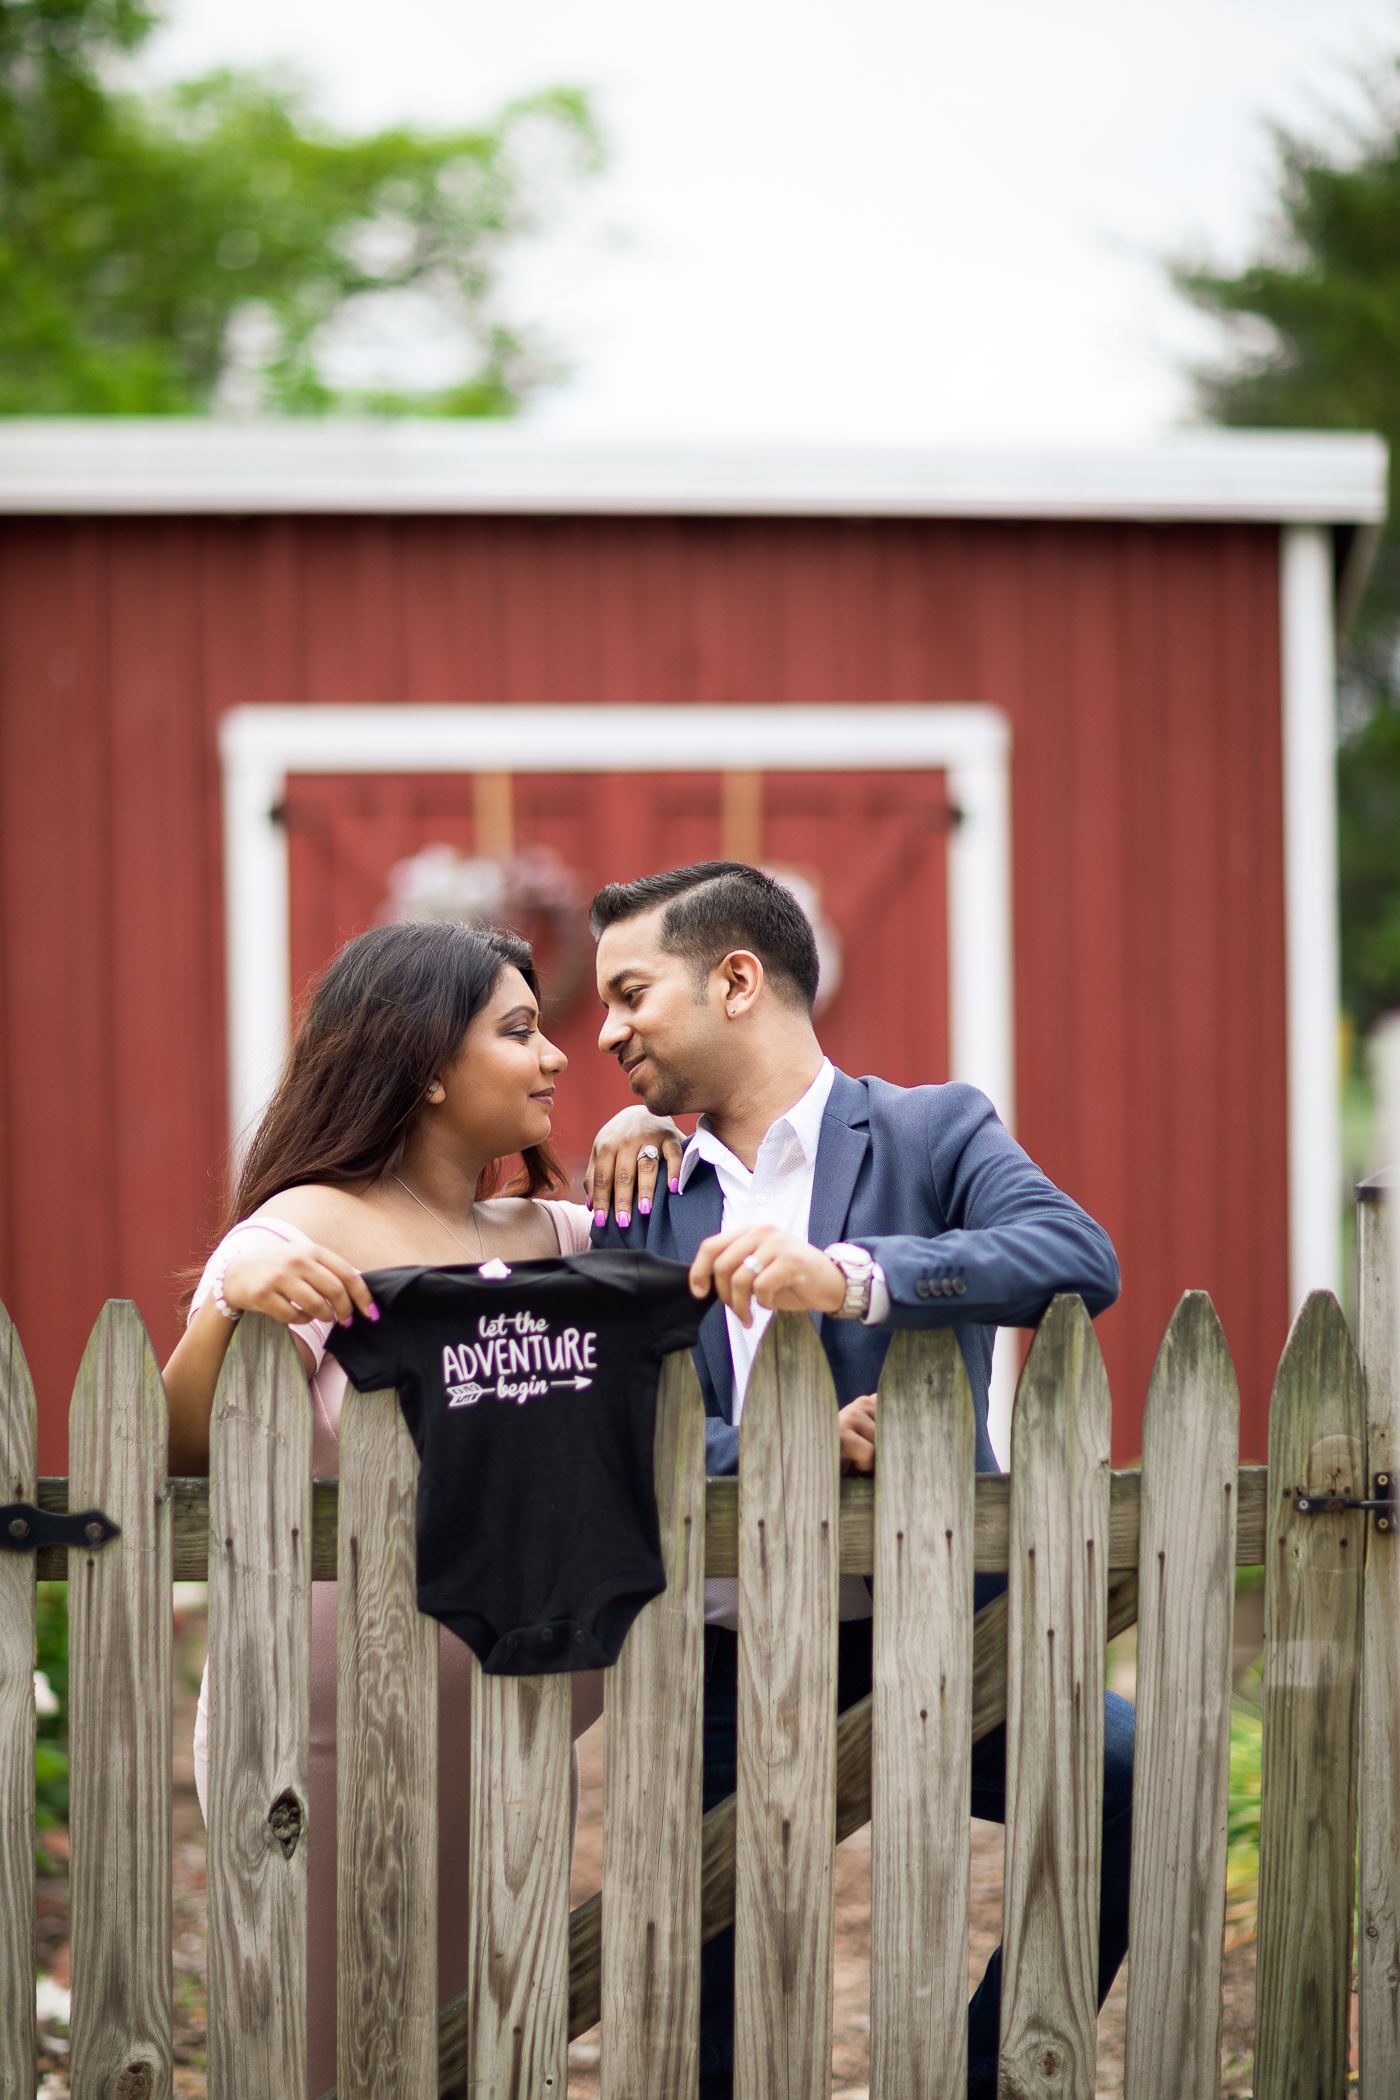 A Beautiful Maternity Session from Felipe at Kinder Farm Park 10